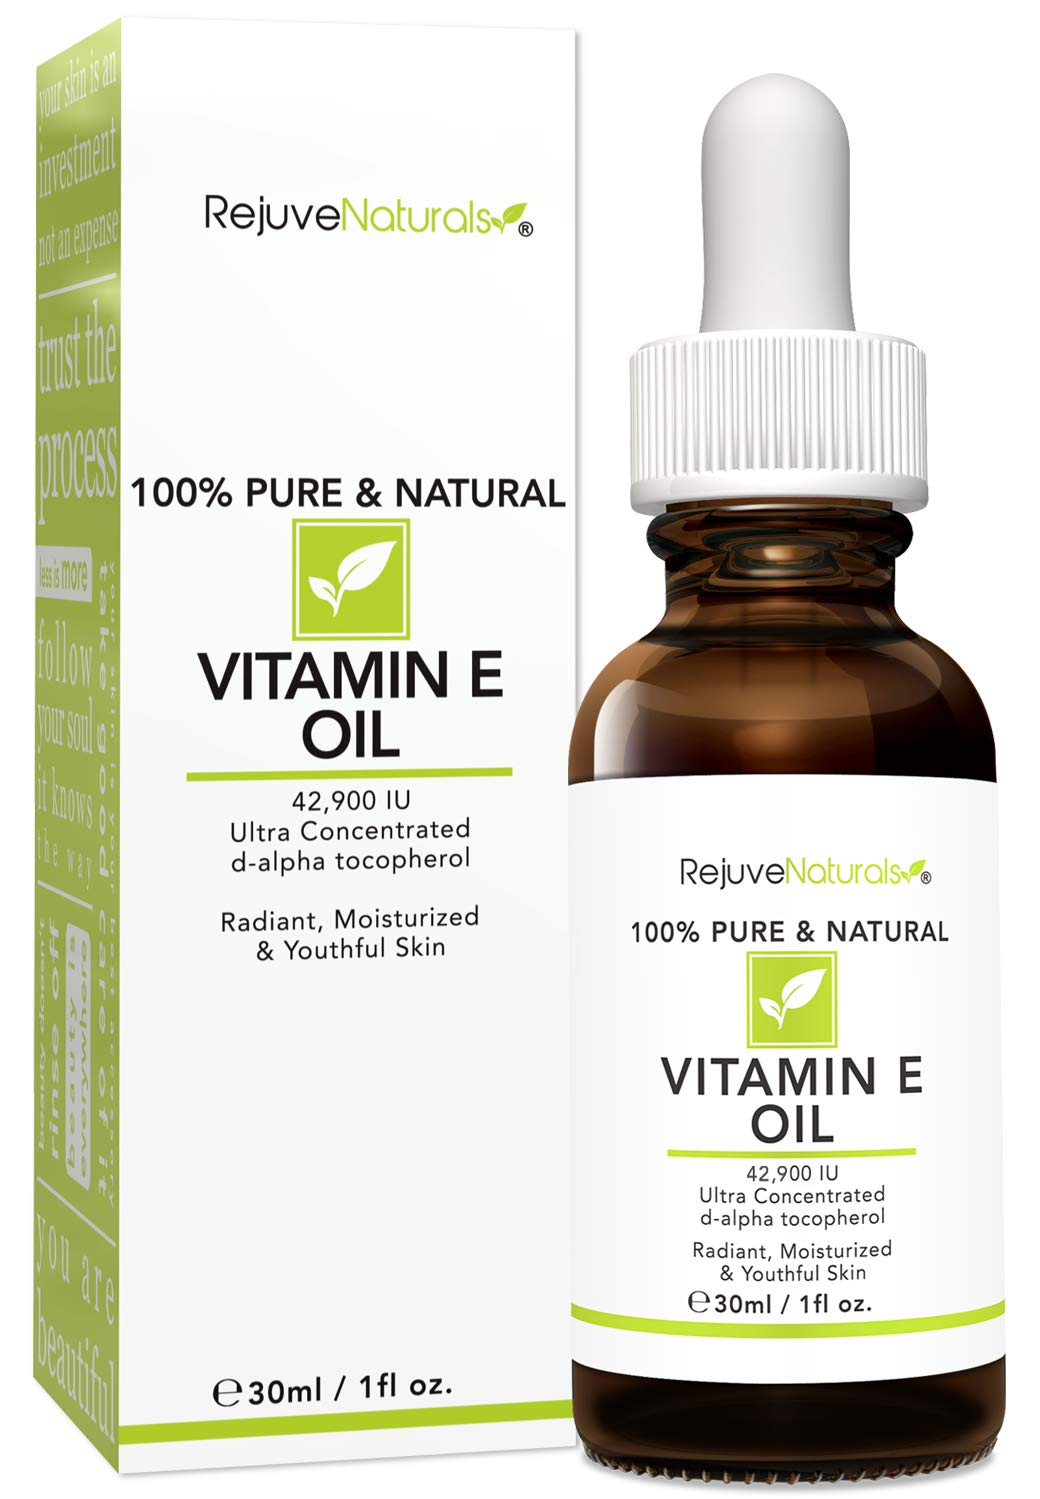 Vitamin E Oil - 100% Pure & Natural, 42,900 IU. Visibly Reduce the Look of Scars, Stretch Marks, Dark Spots & Wrinkles for Moisturized & Youthful Skin. d-alpha tocopherol Vitamin E, Non-GMO. (1oz)